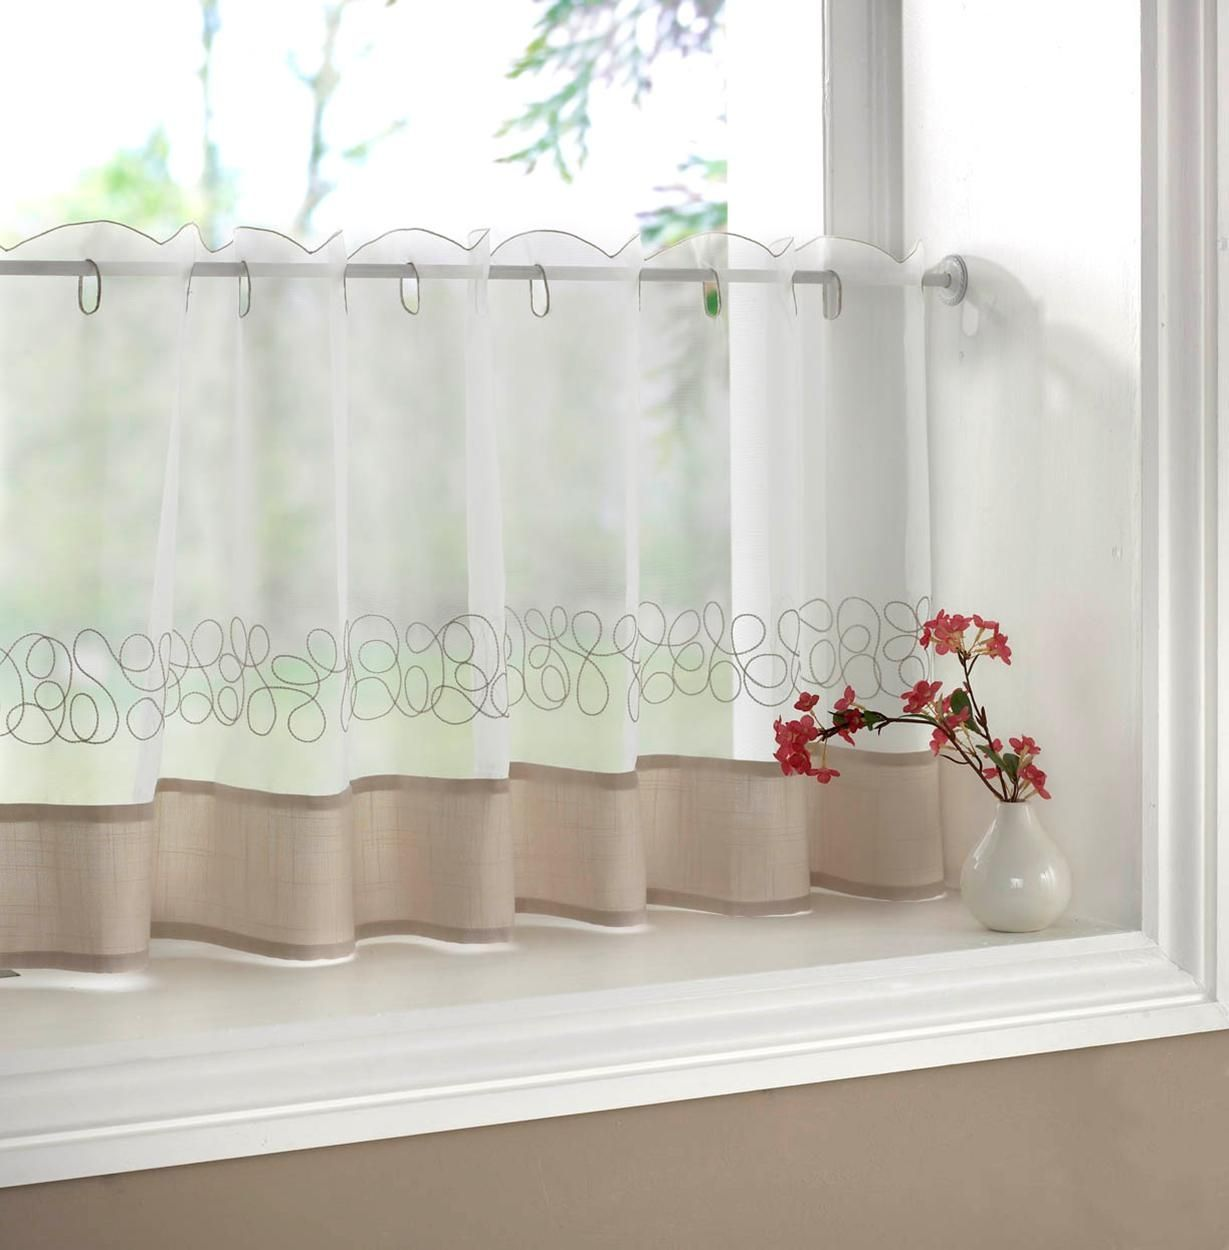 Net Curtains Half Window | http://realtag.info | Pinterest